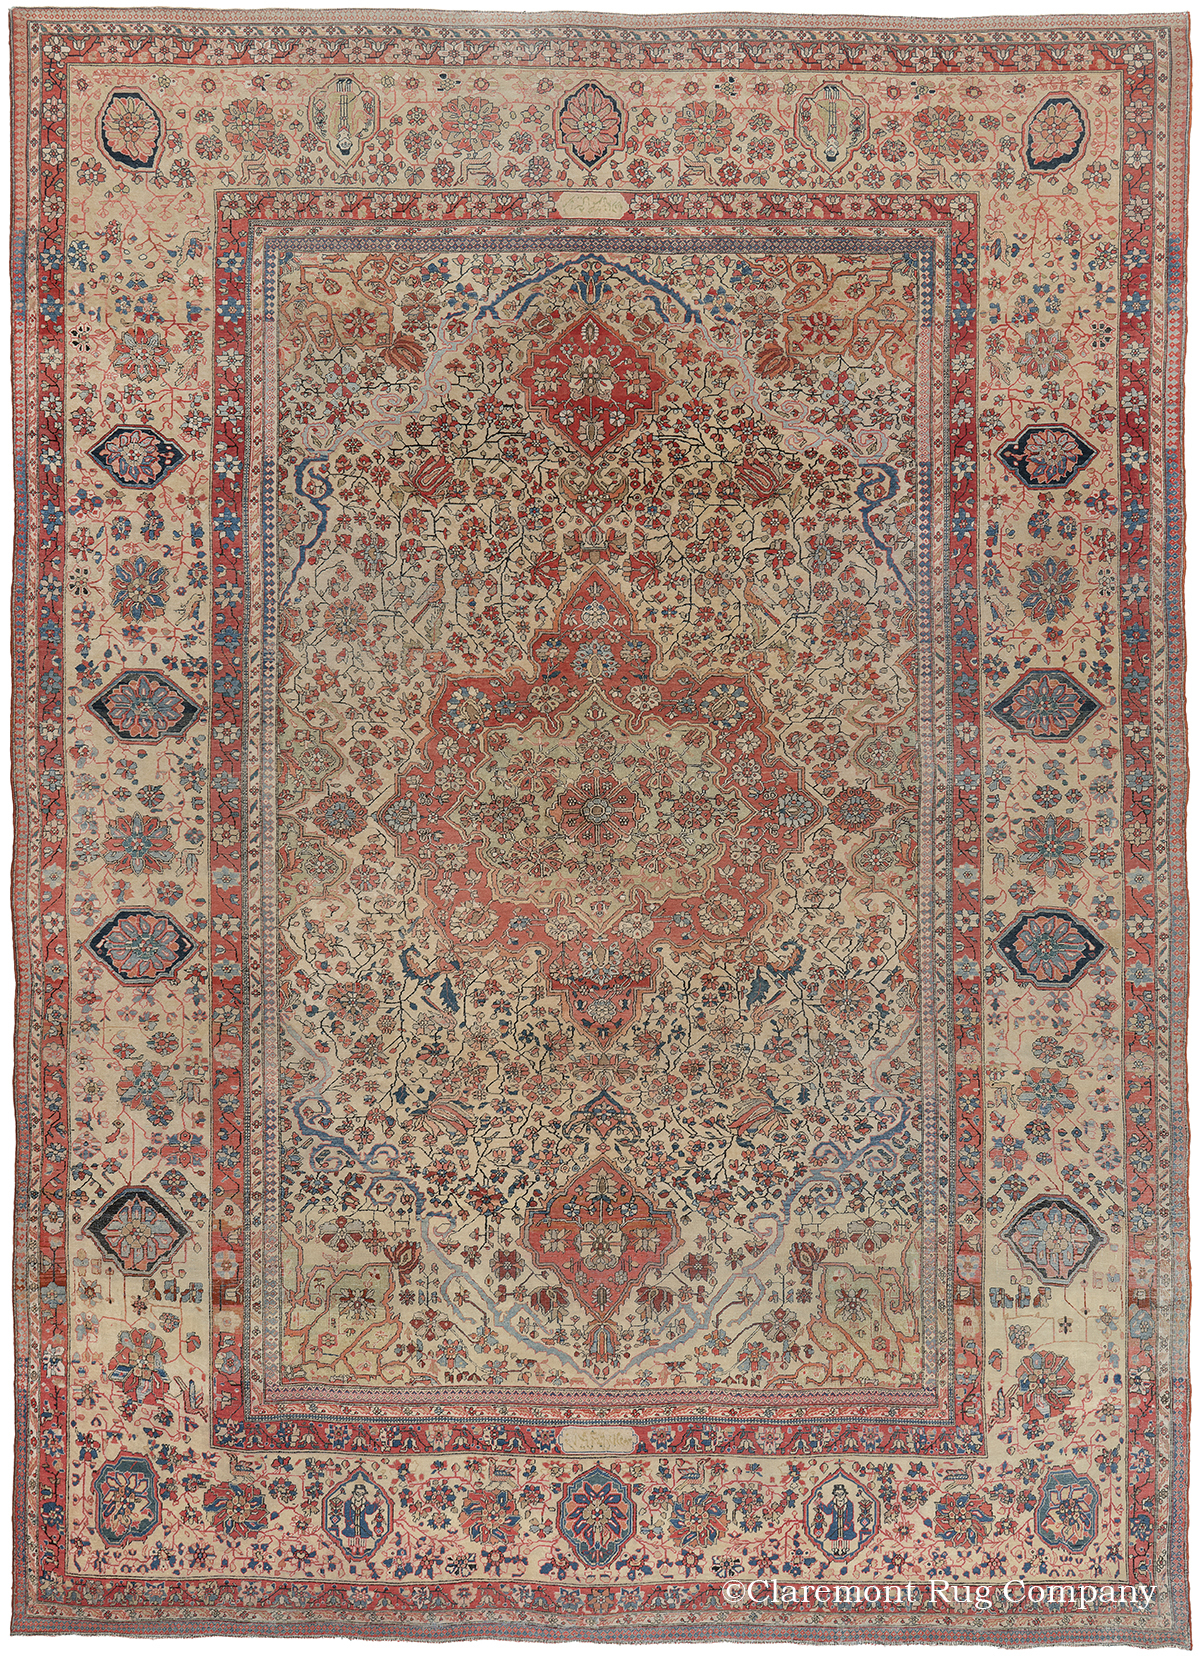 Claremont Rug Company Names 50 Best Of The Antique Oriental Rugs Sold In 2016 With Online Gallery Exhibition Business Wire